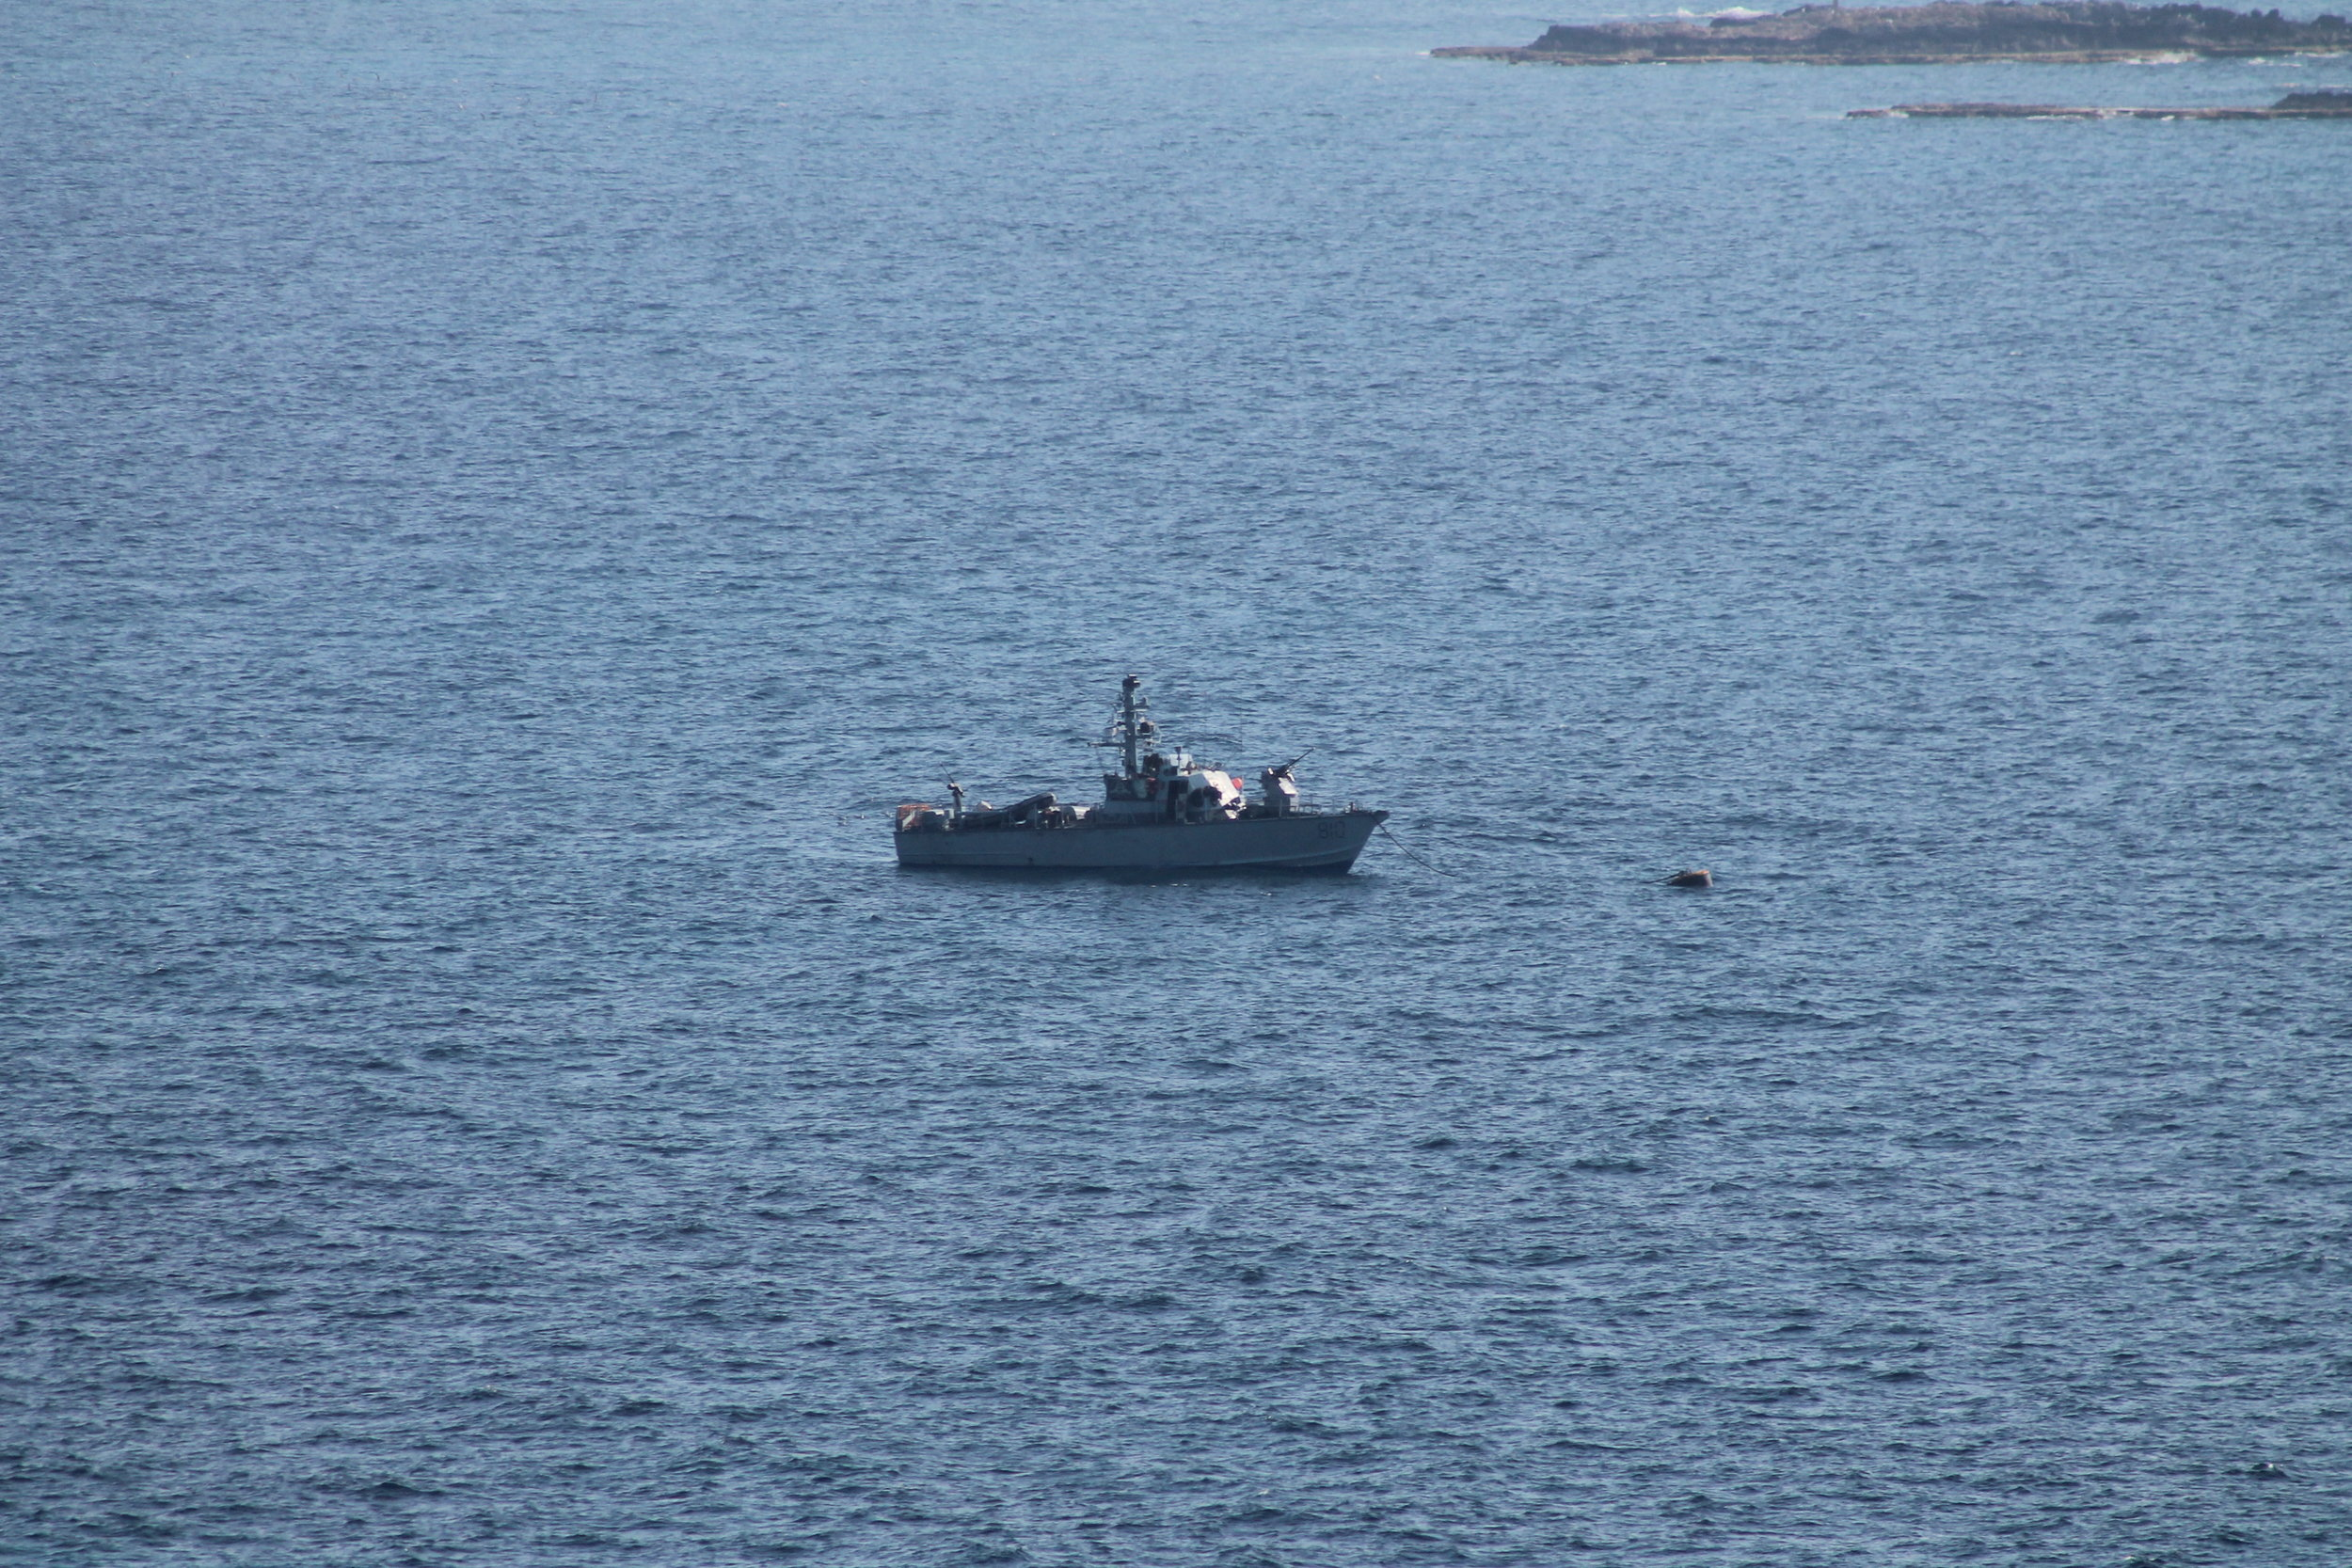 An Israeli warship keeping watch over the border with Lebanon.